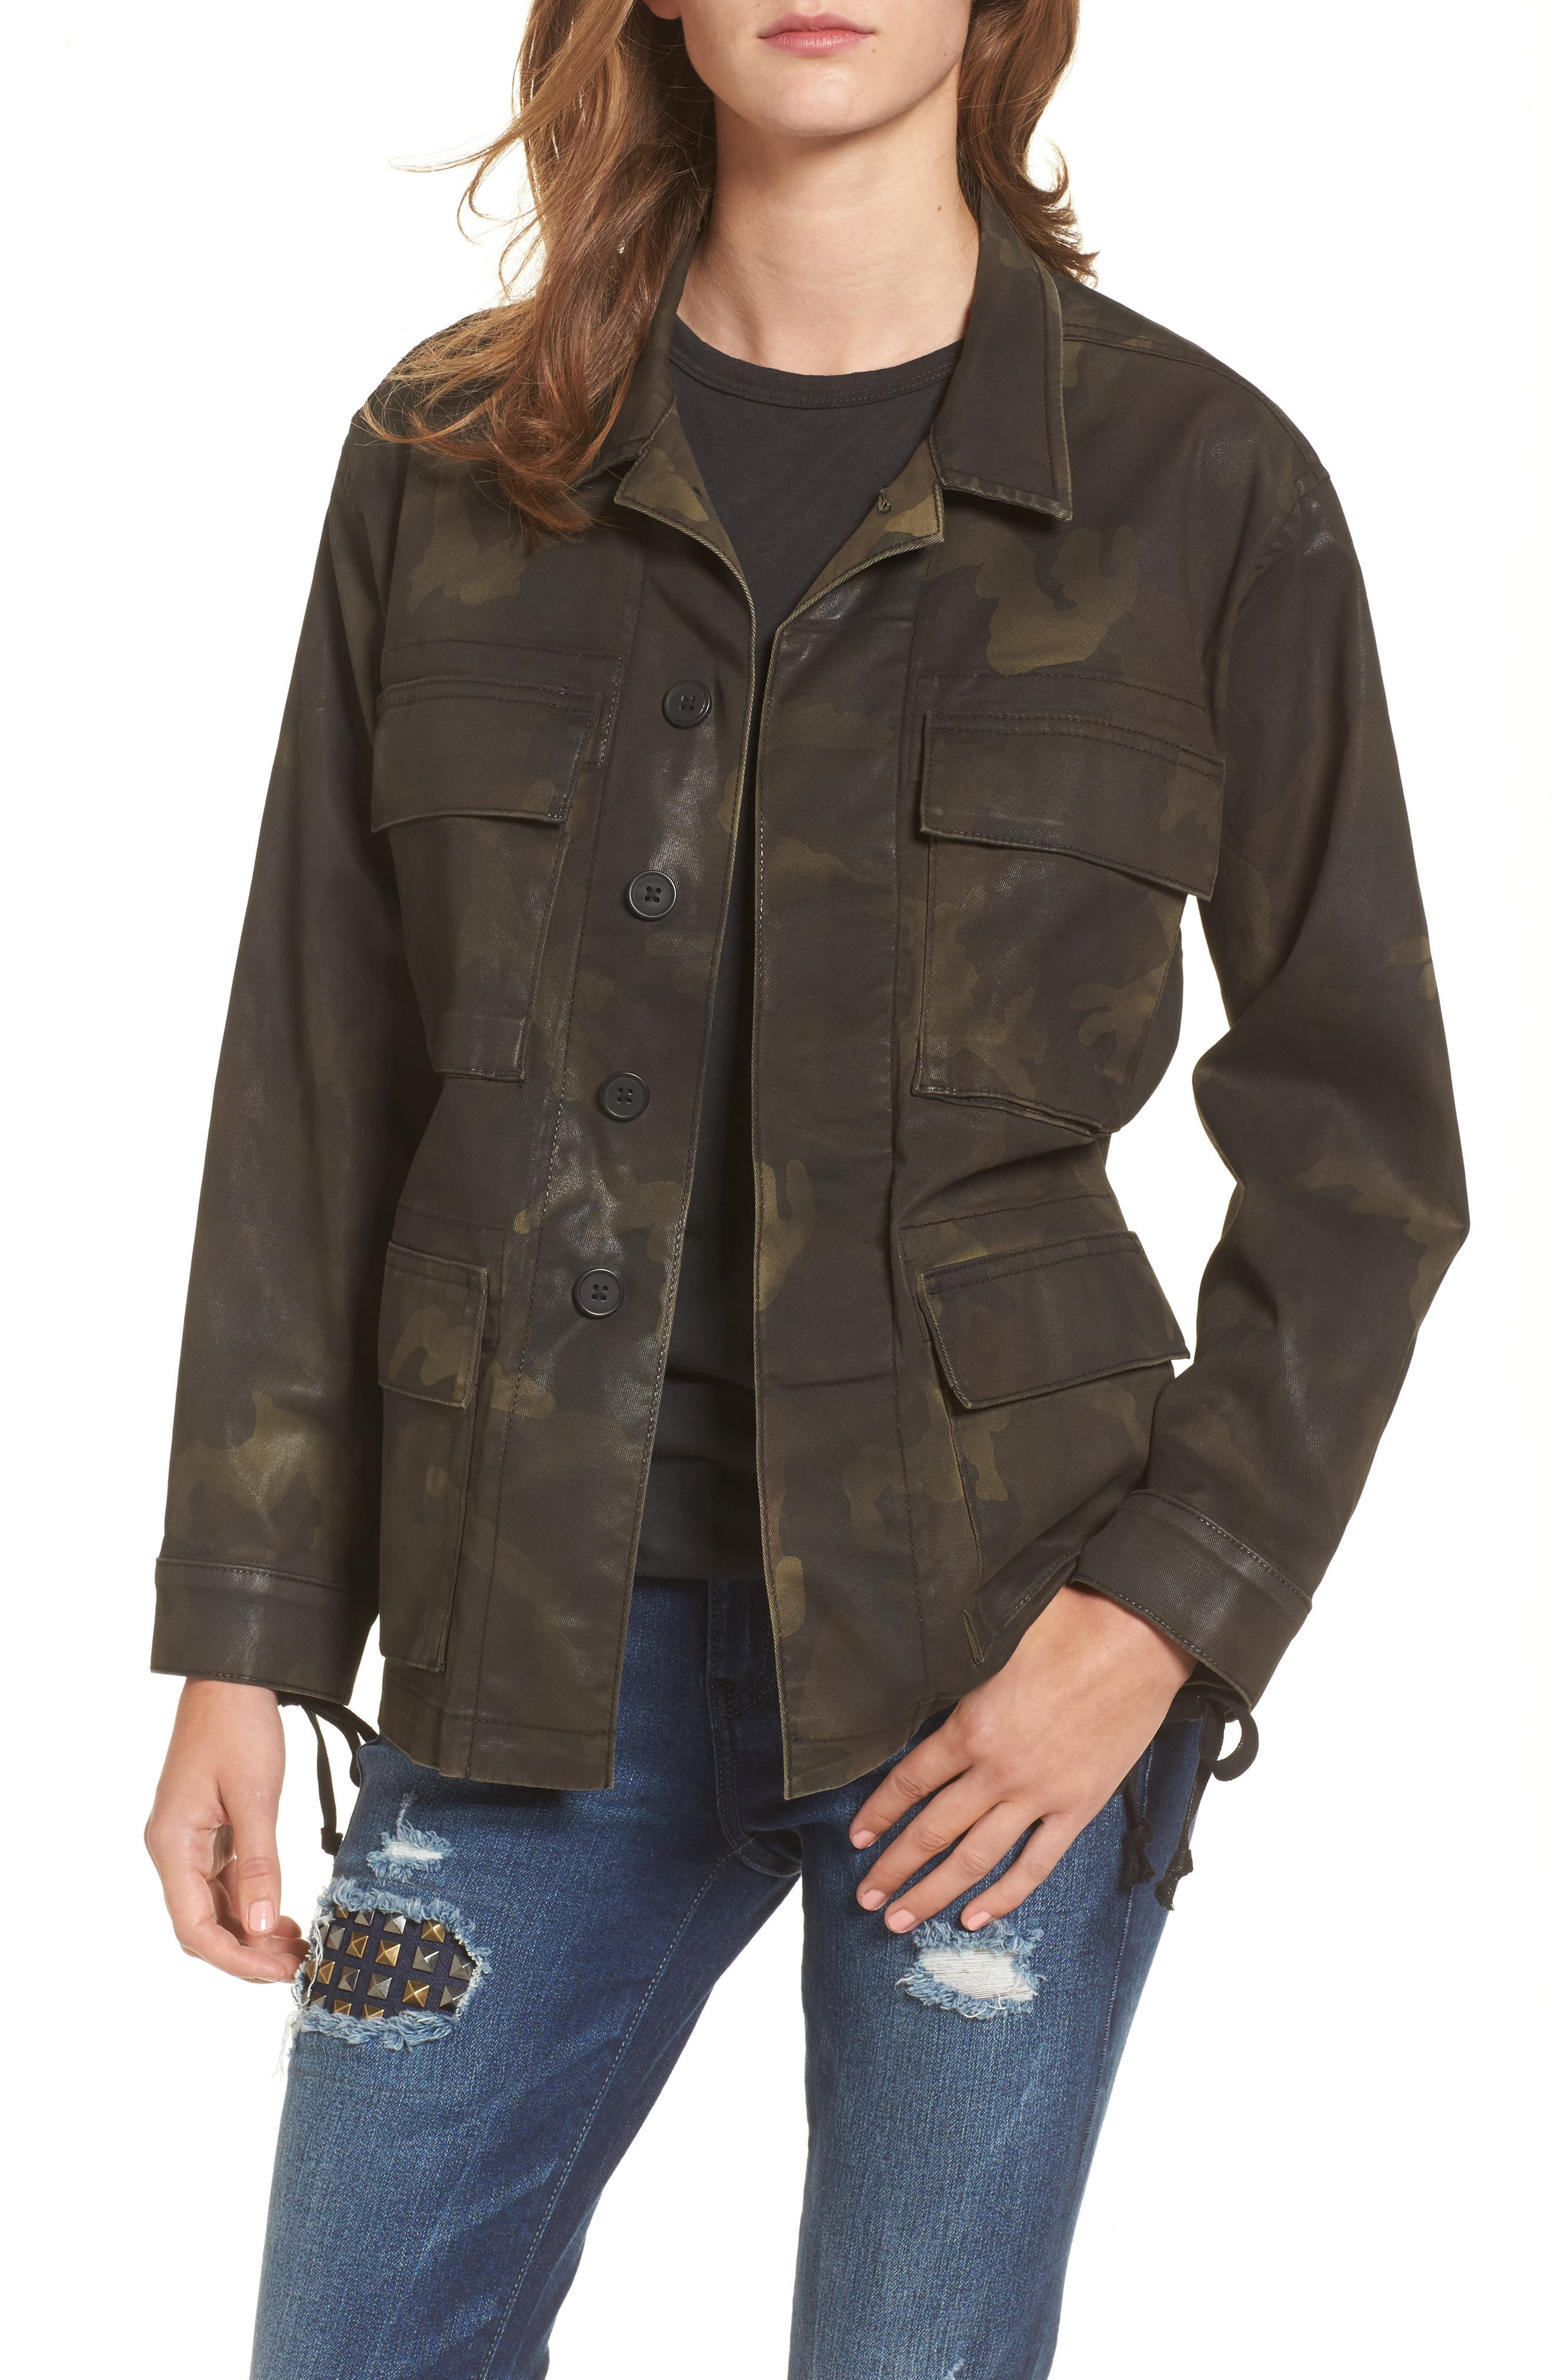 TRUE RELIGION BRAND JEANS,                             Coated Military Jacket,                             Main thumbnail 1, color,                             300